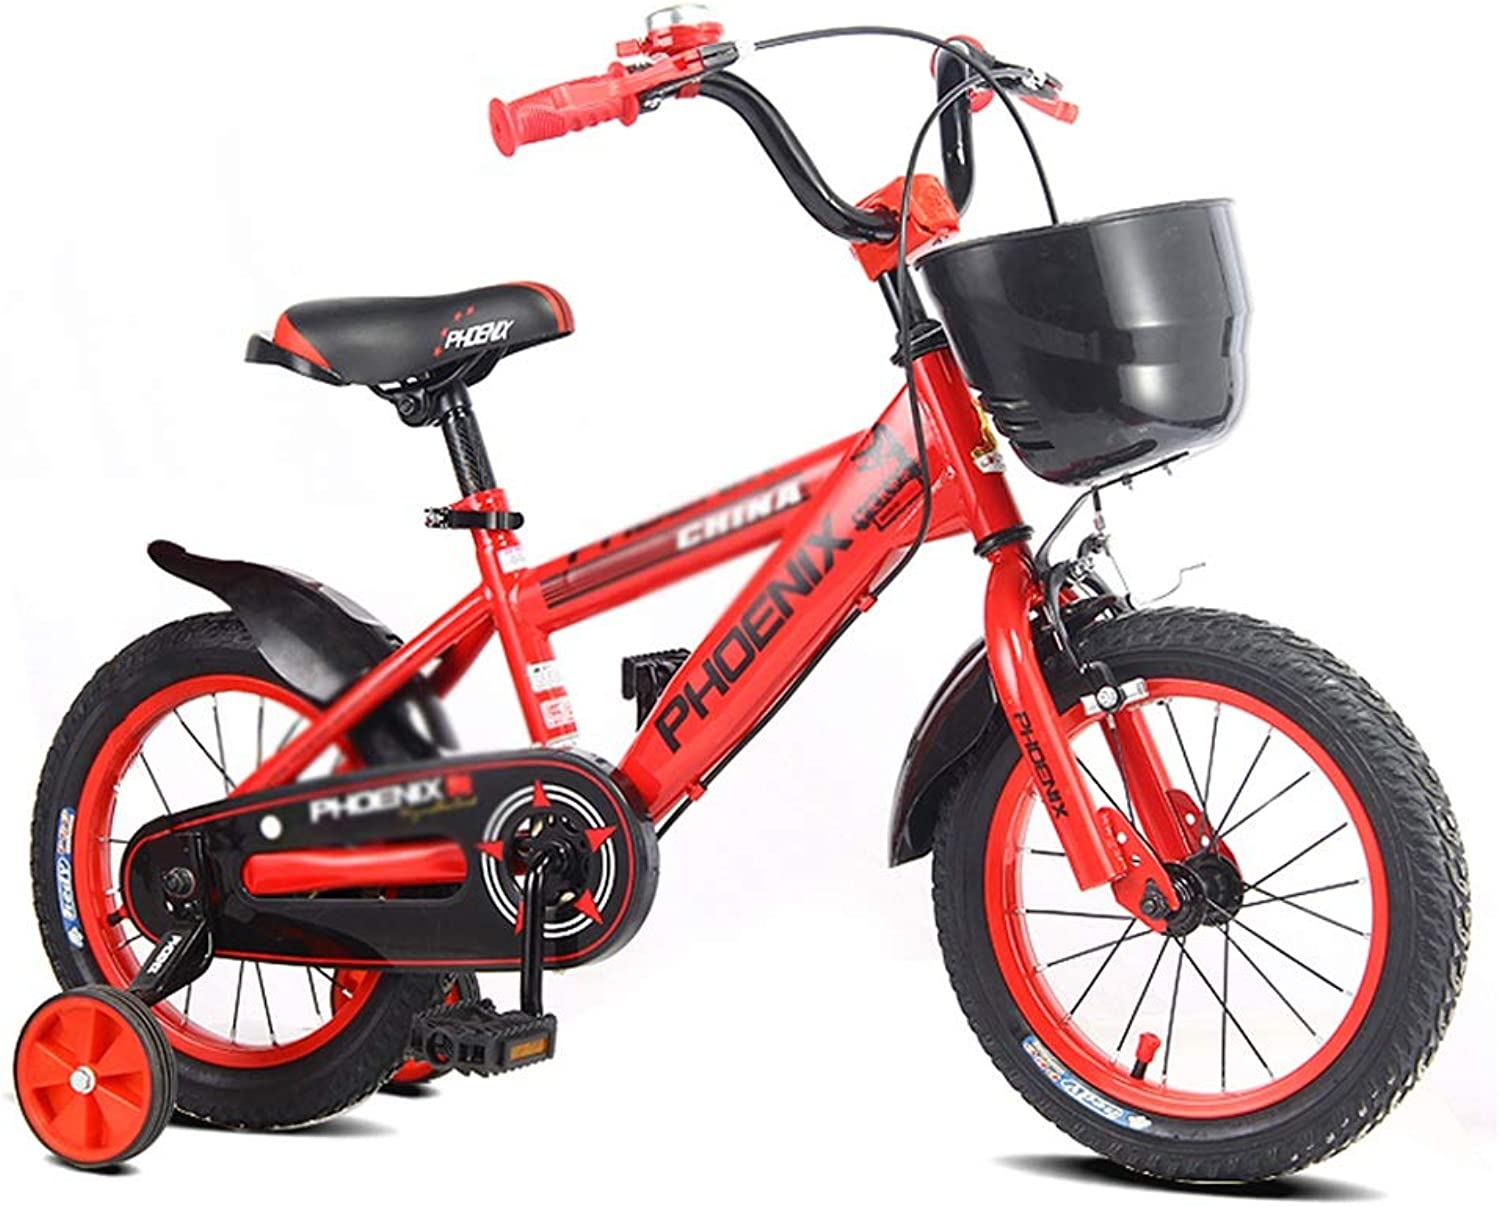 Kids' Bikes Student Bicycle Single Speed Bicycle Student Bicycle Girl Bicycle Bicycle, Birthday Gift (color   Red, Size   14inches)